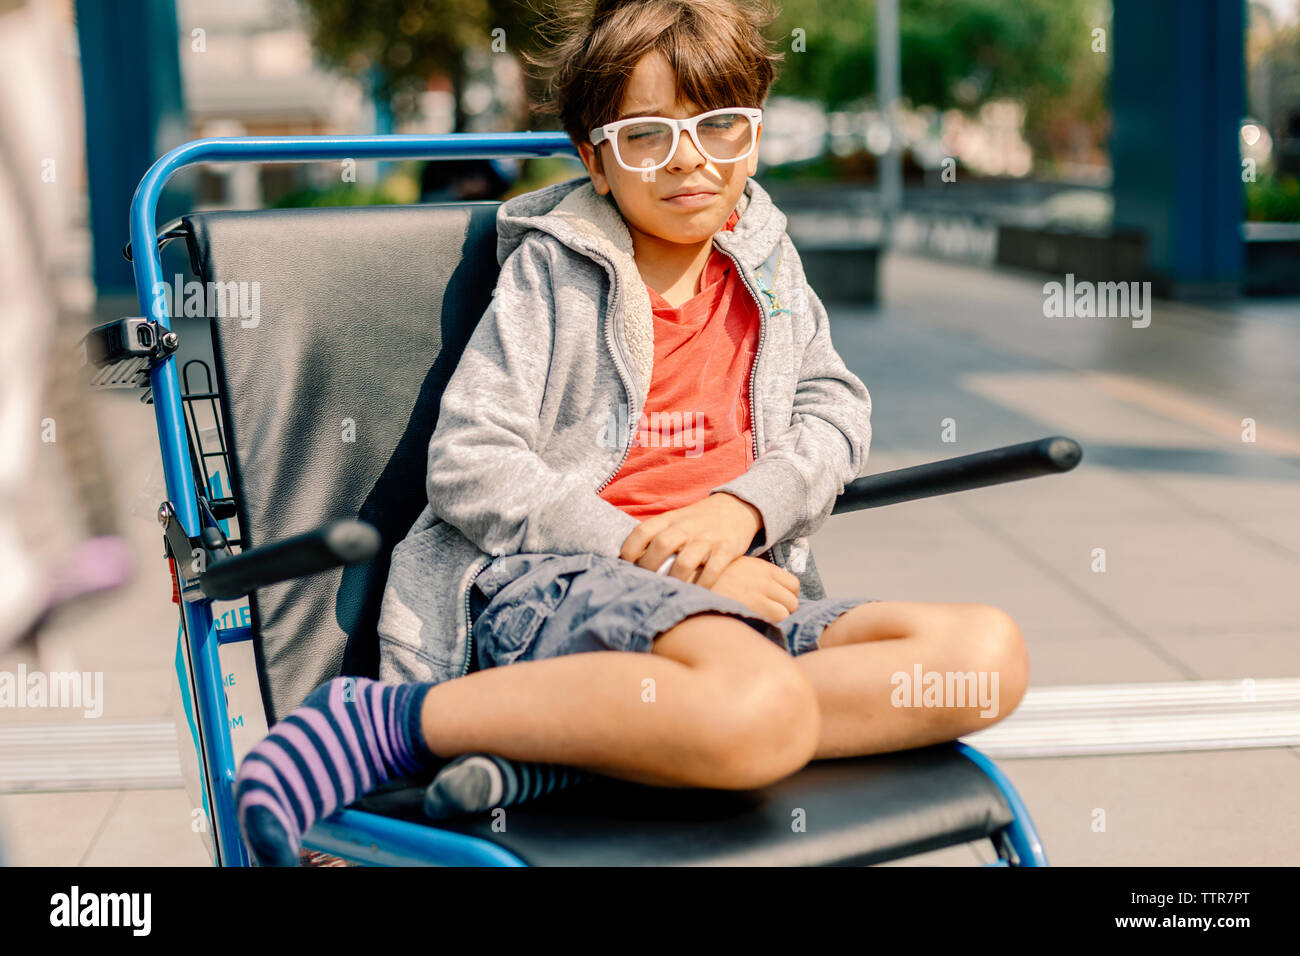 Uncomfortable boy in wheel chair leaving the hospital Stock Photo